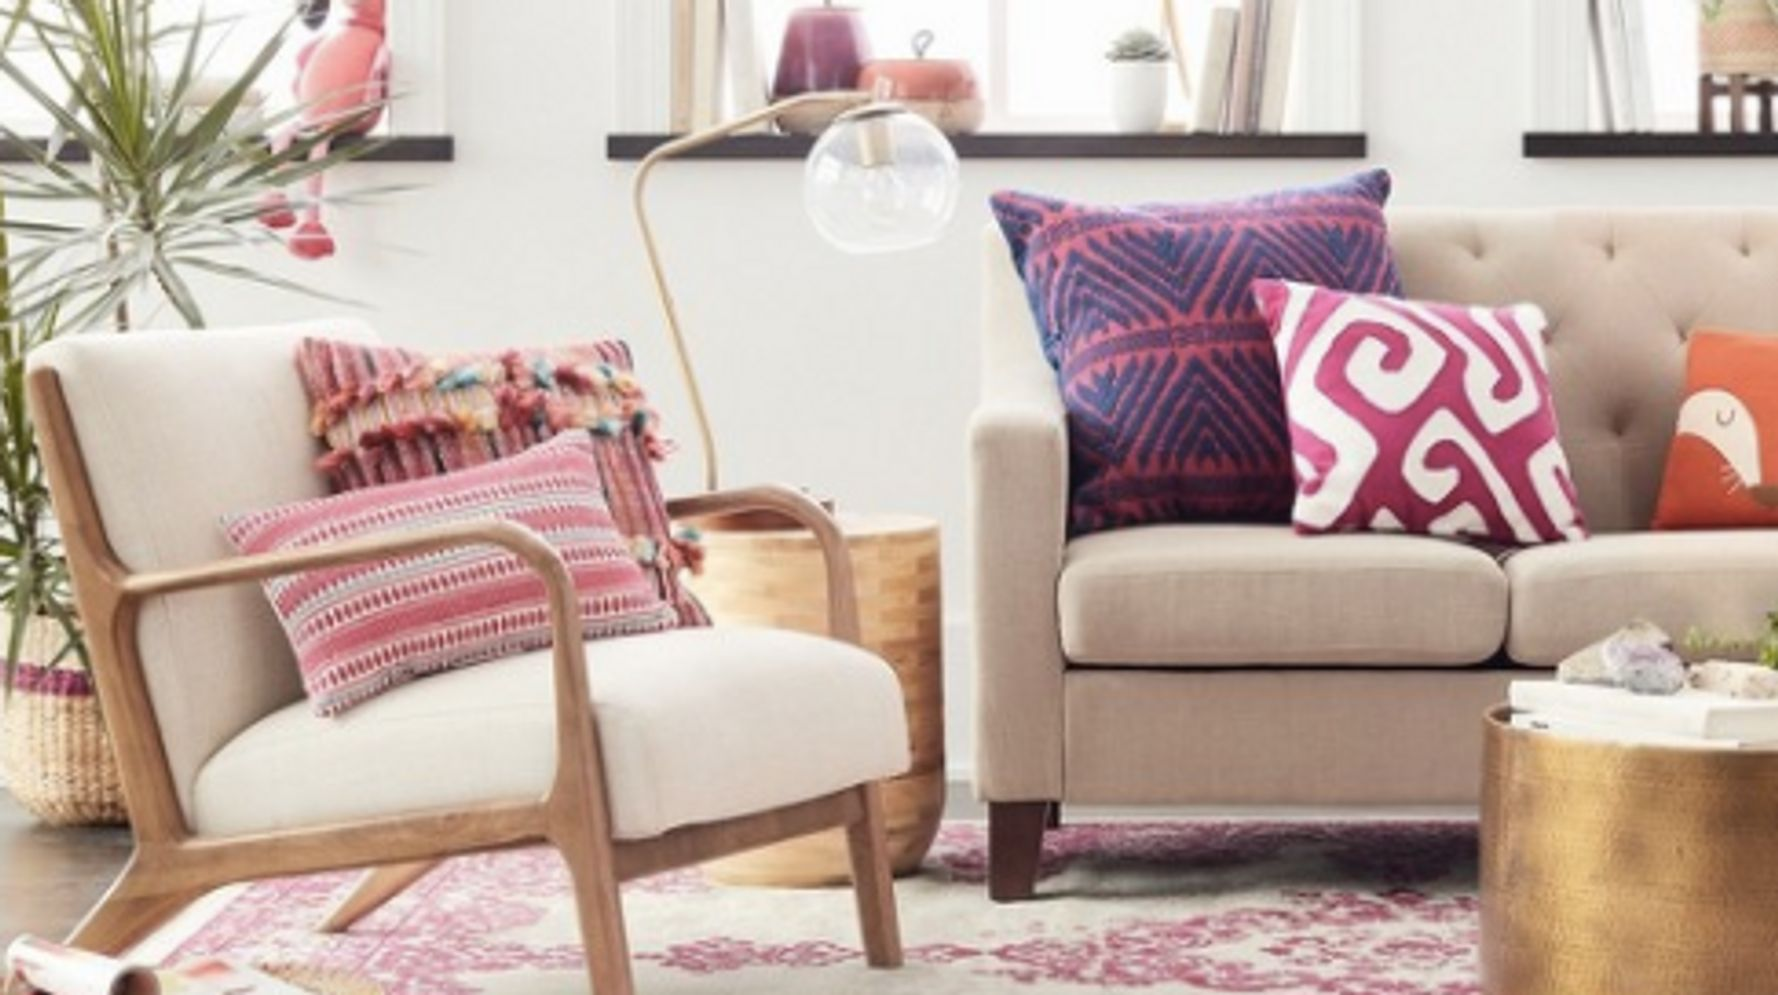 Surprising Targets New Home Line Project 62 Is Way More Affordable Spiritservingveterans Wood Chair Design Ideas Spiritservingveteransorg